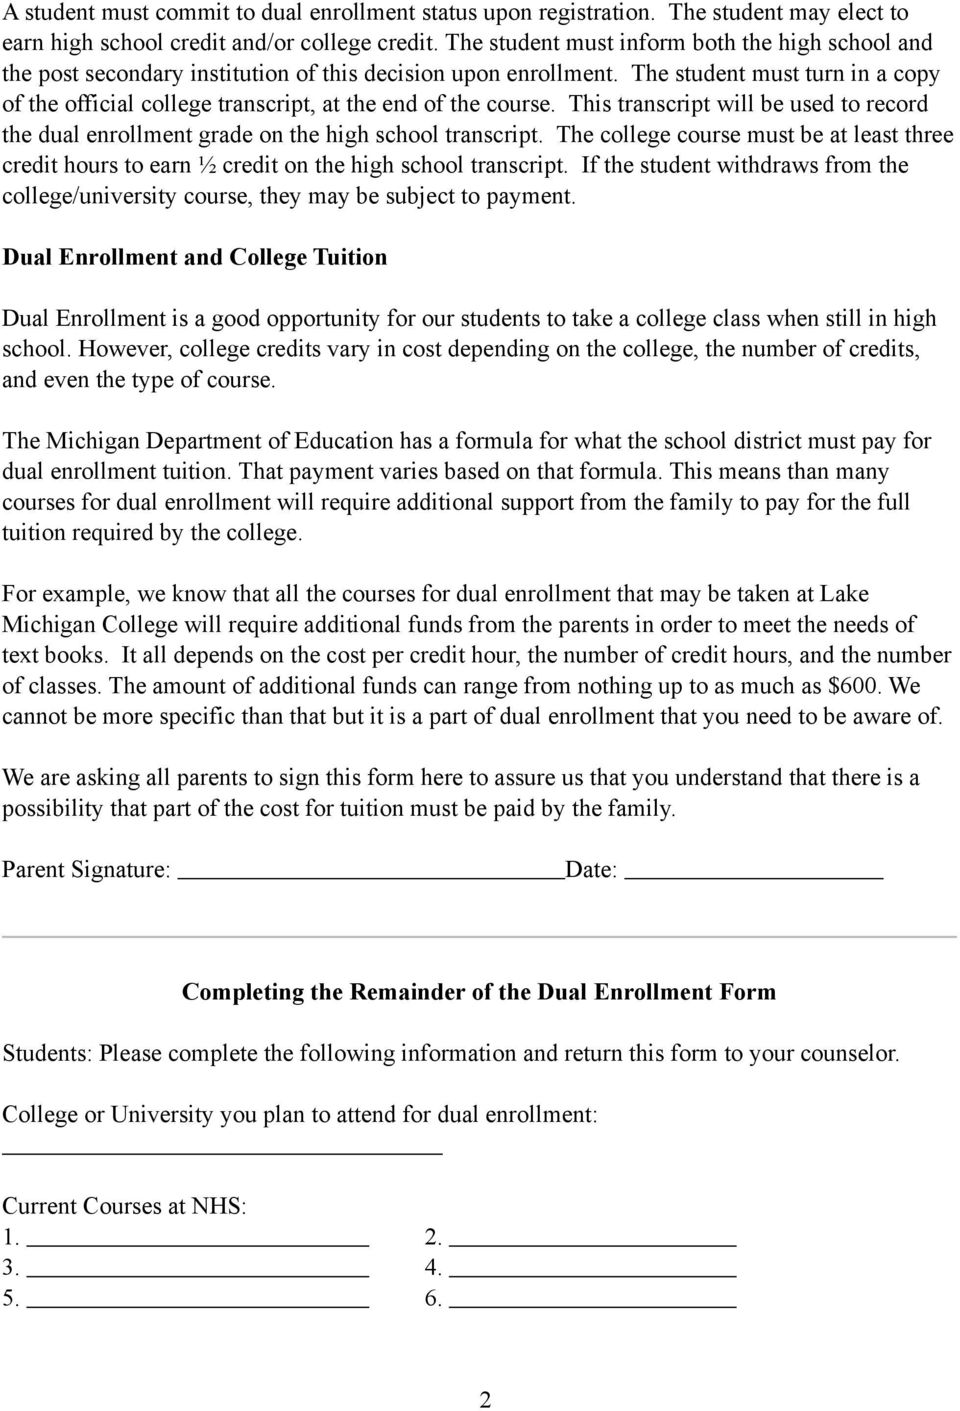 The student must turn in a copy of the official college transcript, at the end of the course. This transcript will be used to record the dual enrollment grade on the high school transcript.